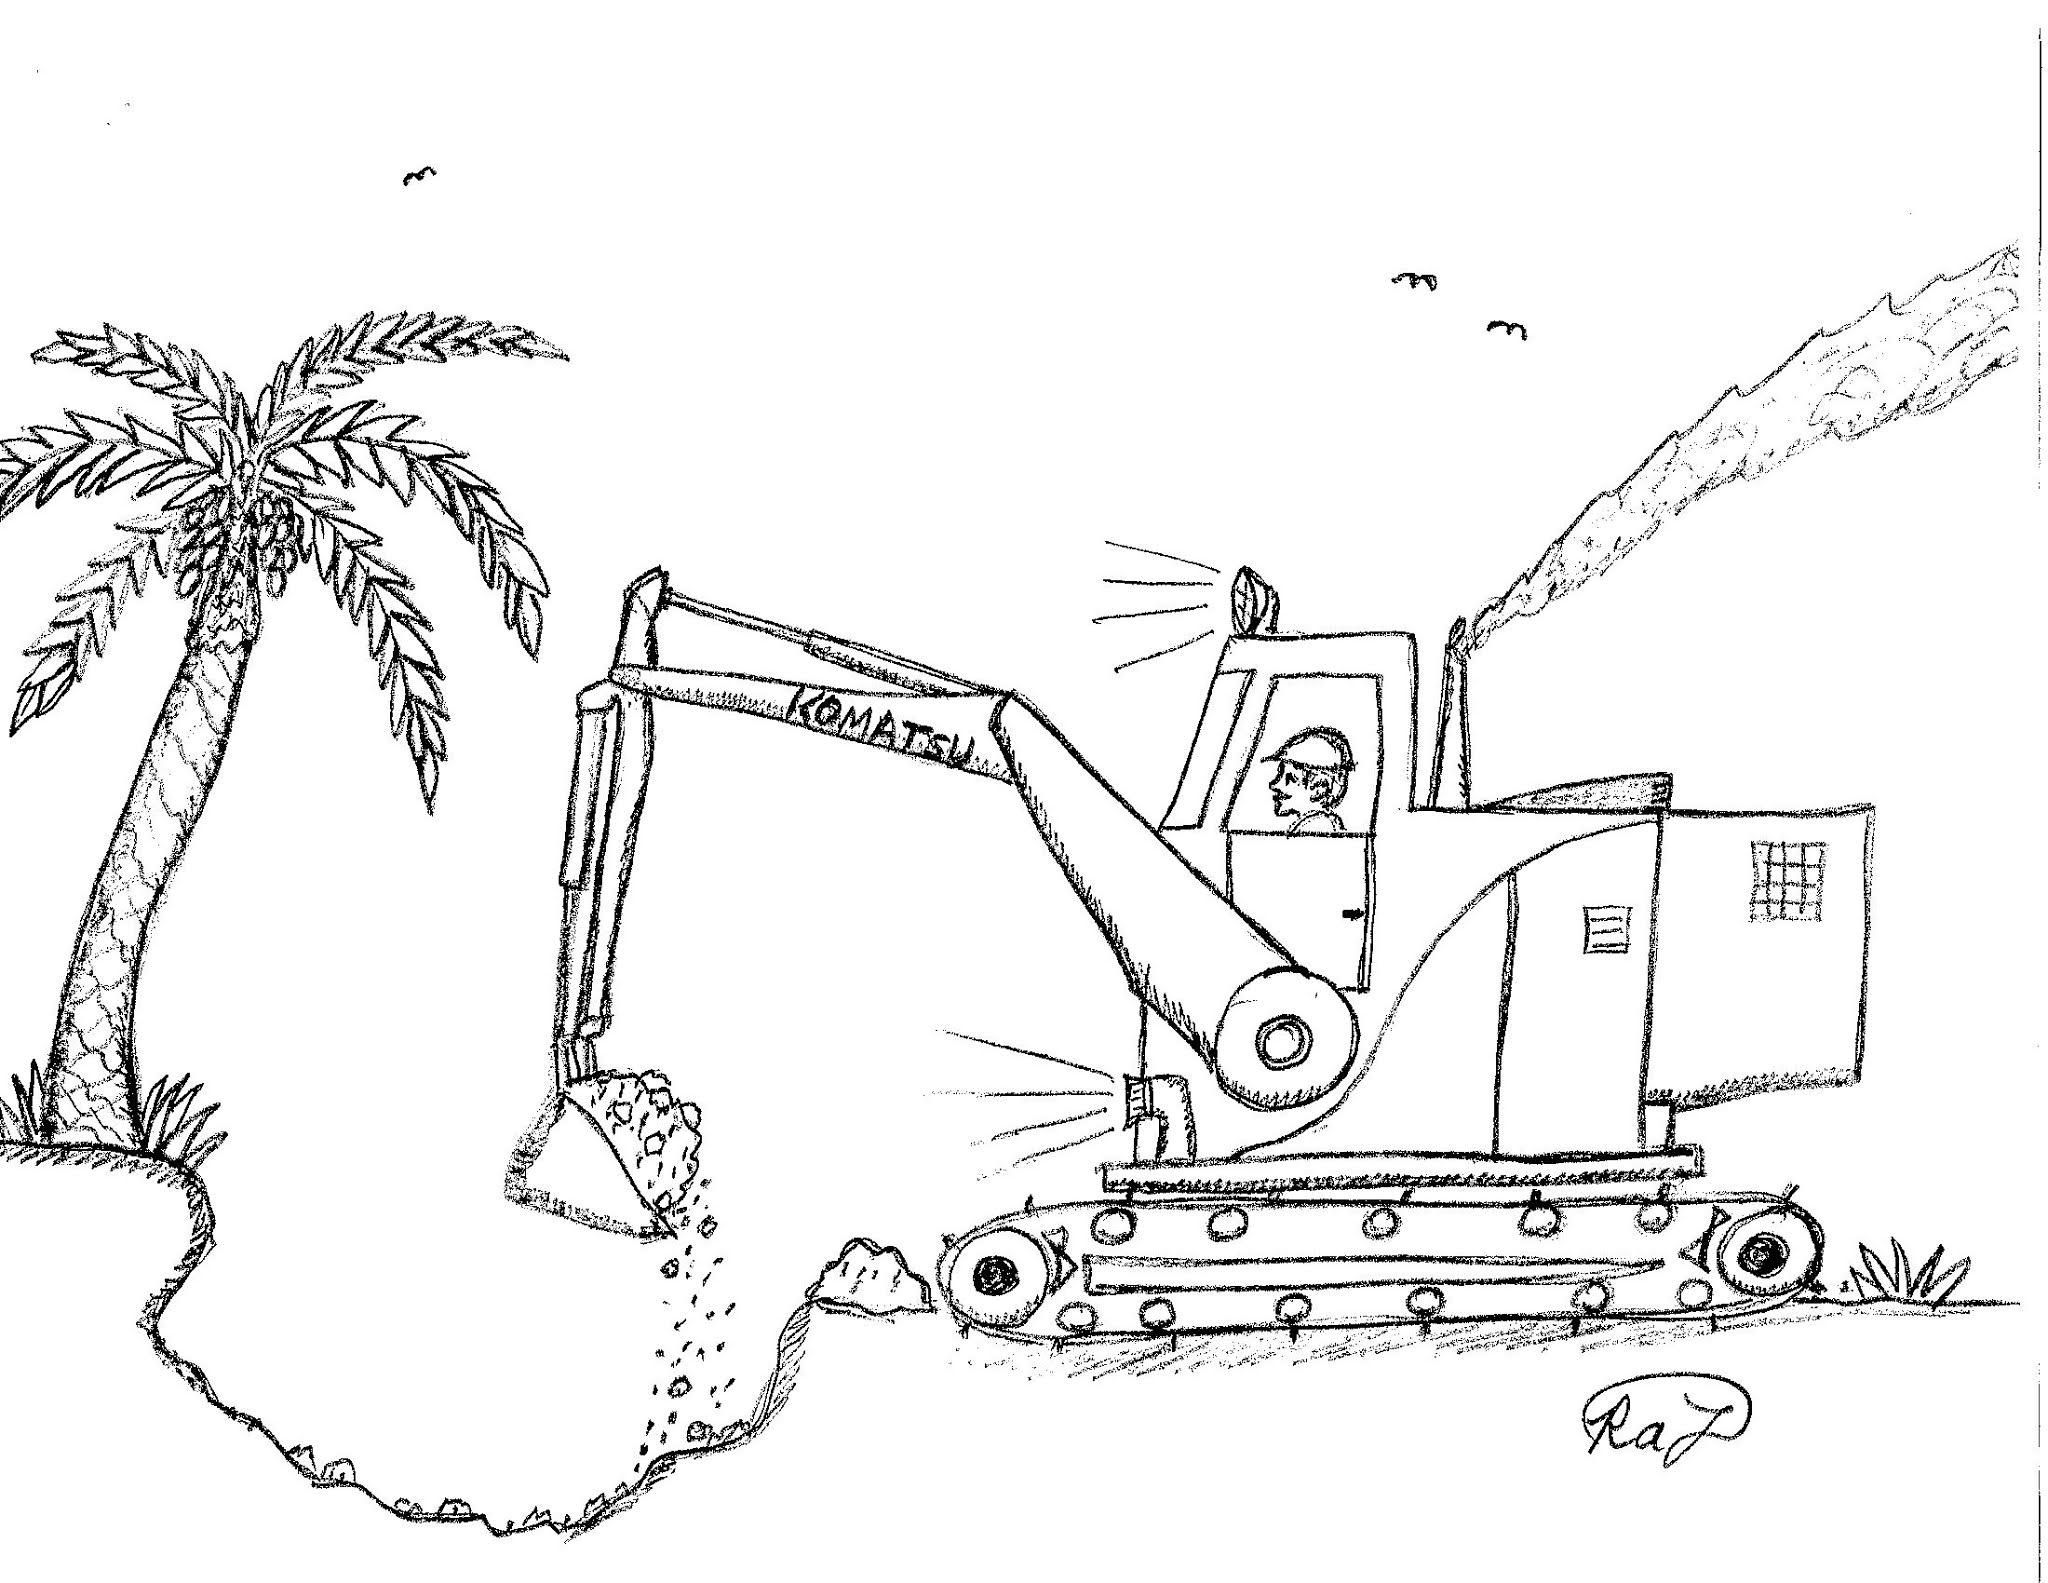 Robin S Great Coloring Pages Heavy Equipment Coloring Pages